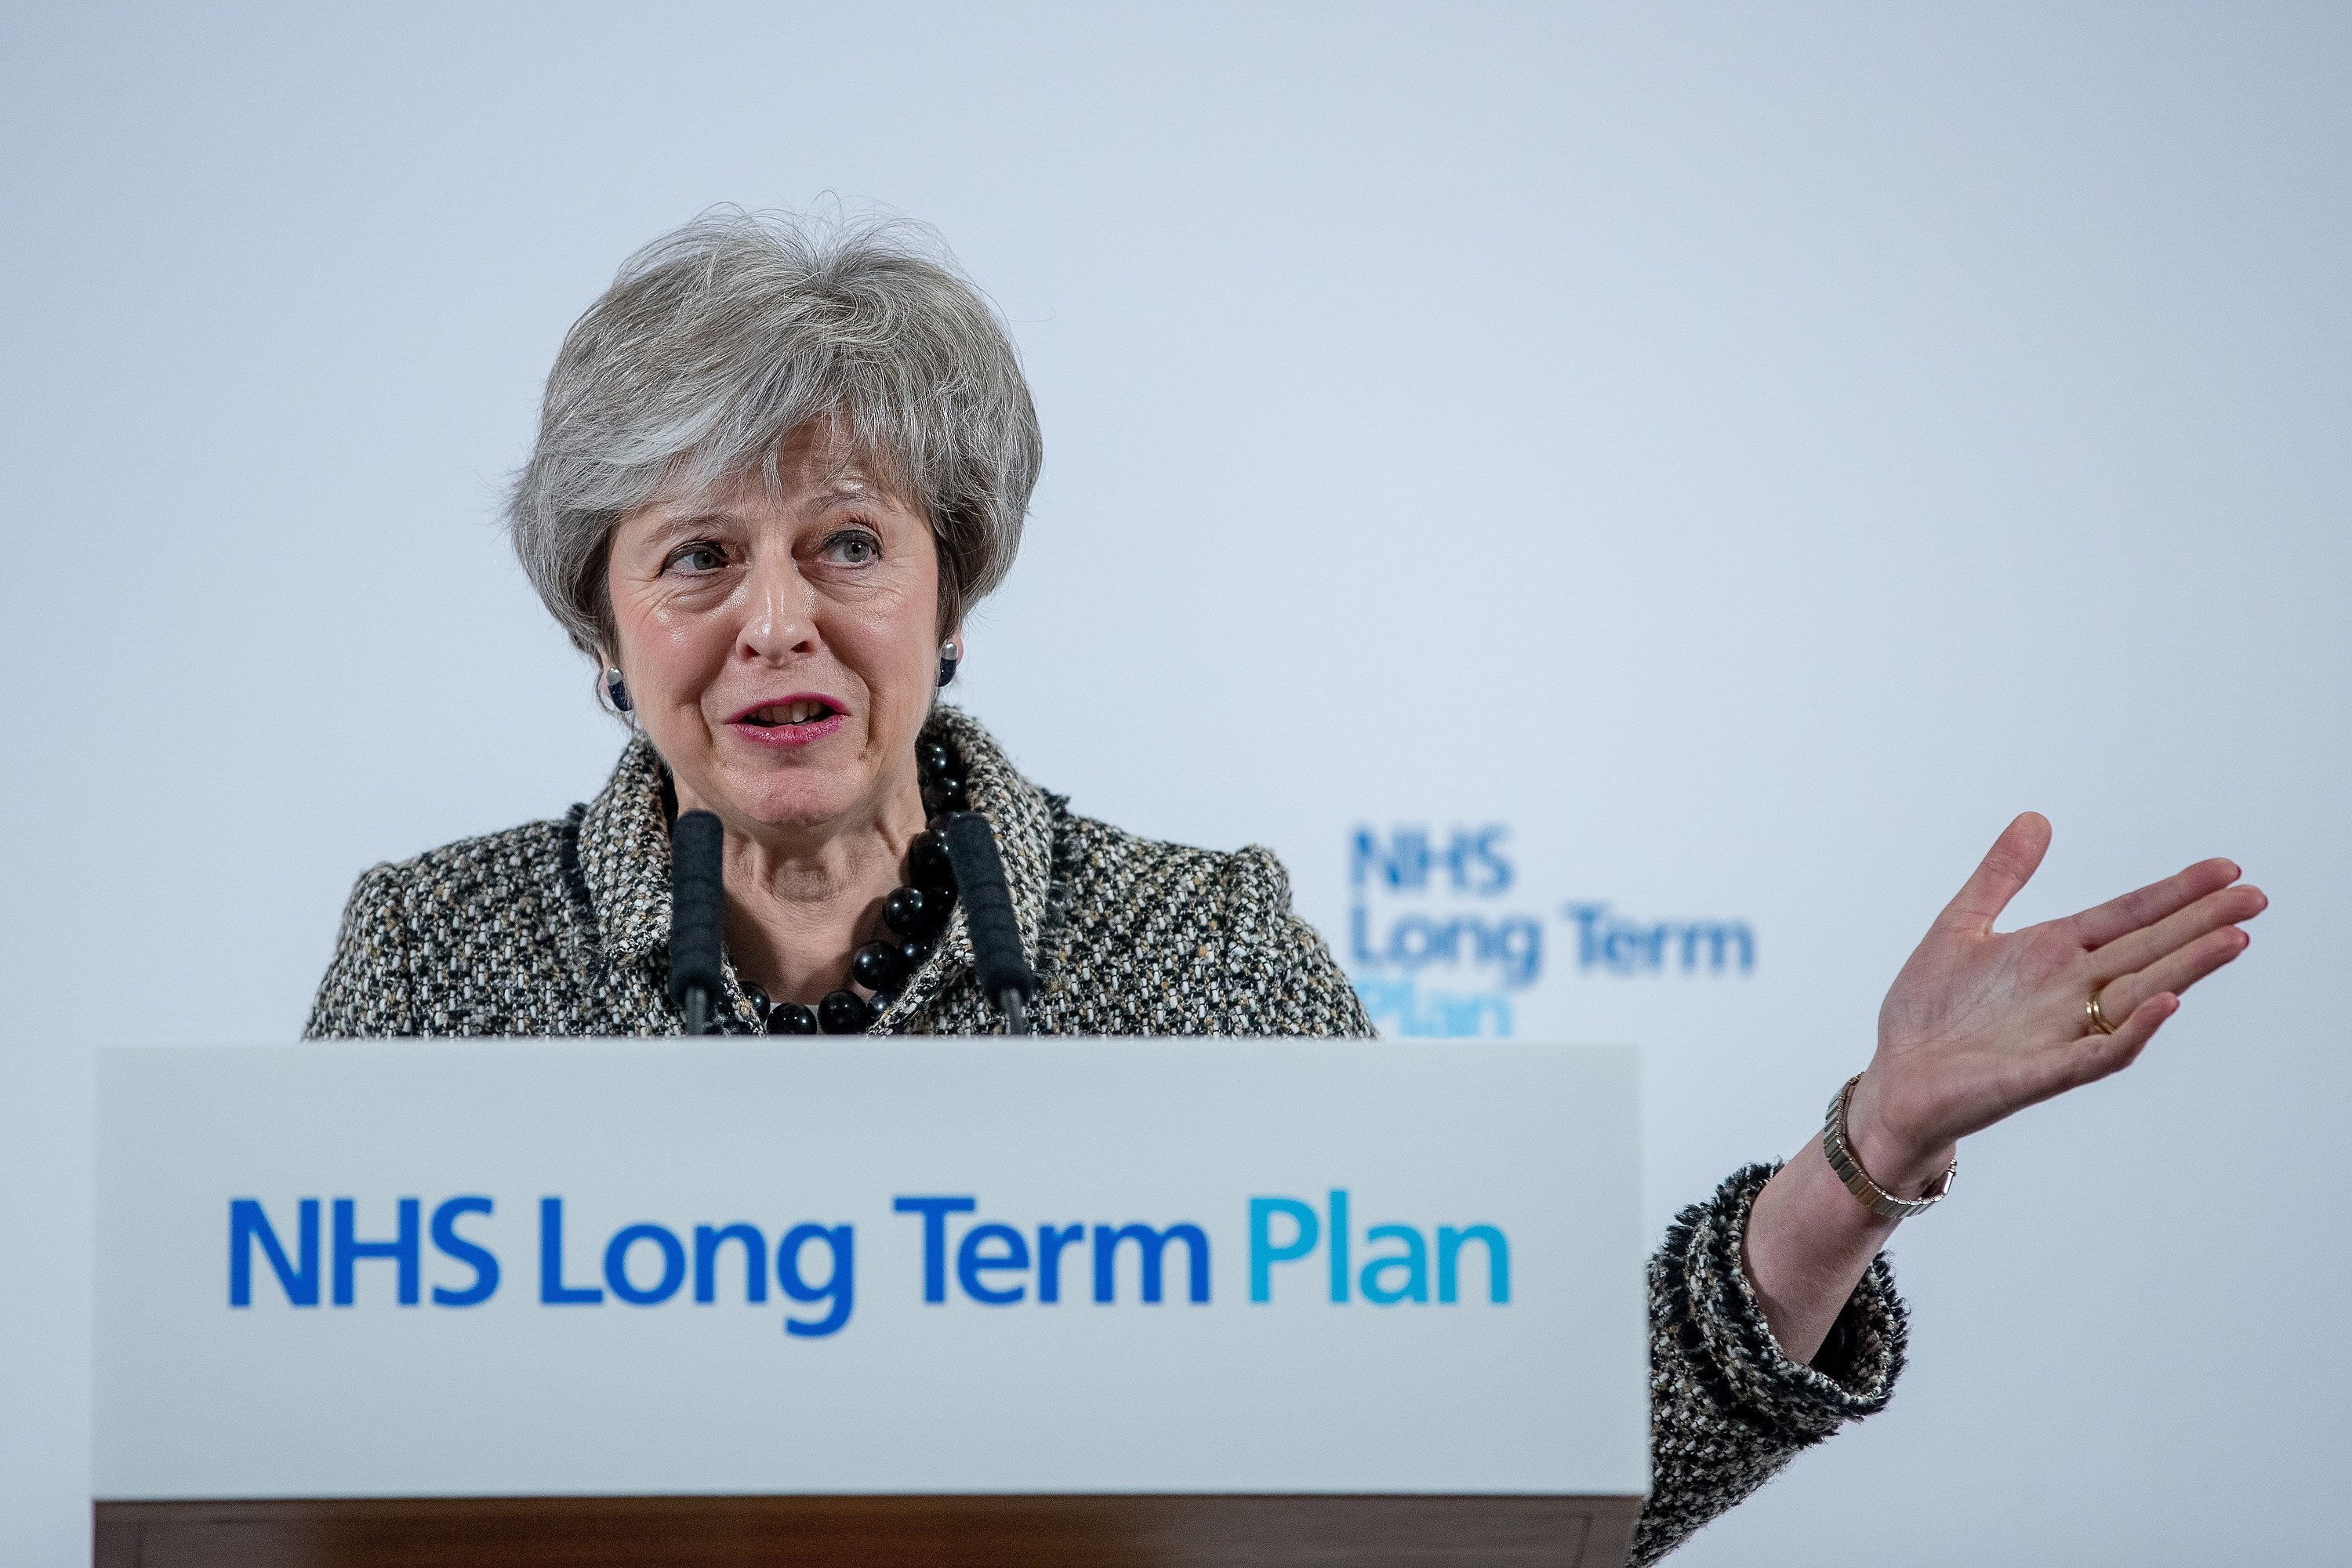 Theresa May Sparks Anger After Praising Brexit Opportunities In Hospital Staffed By EU